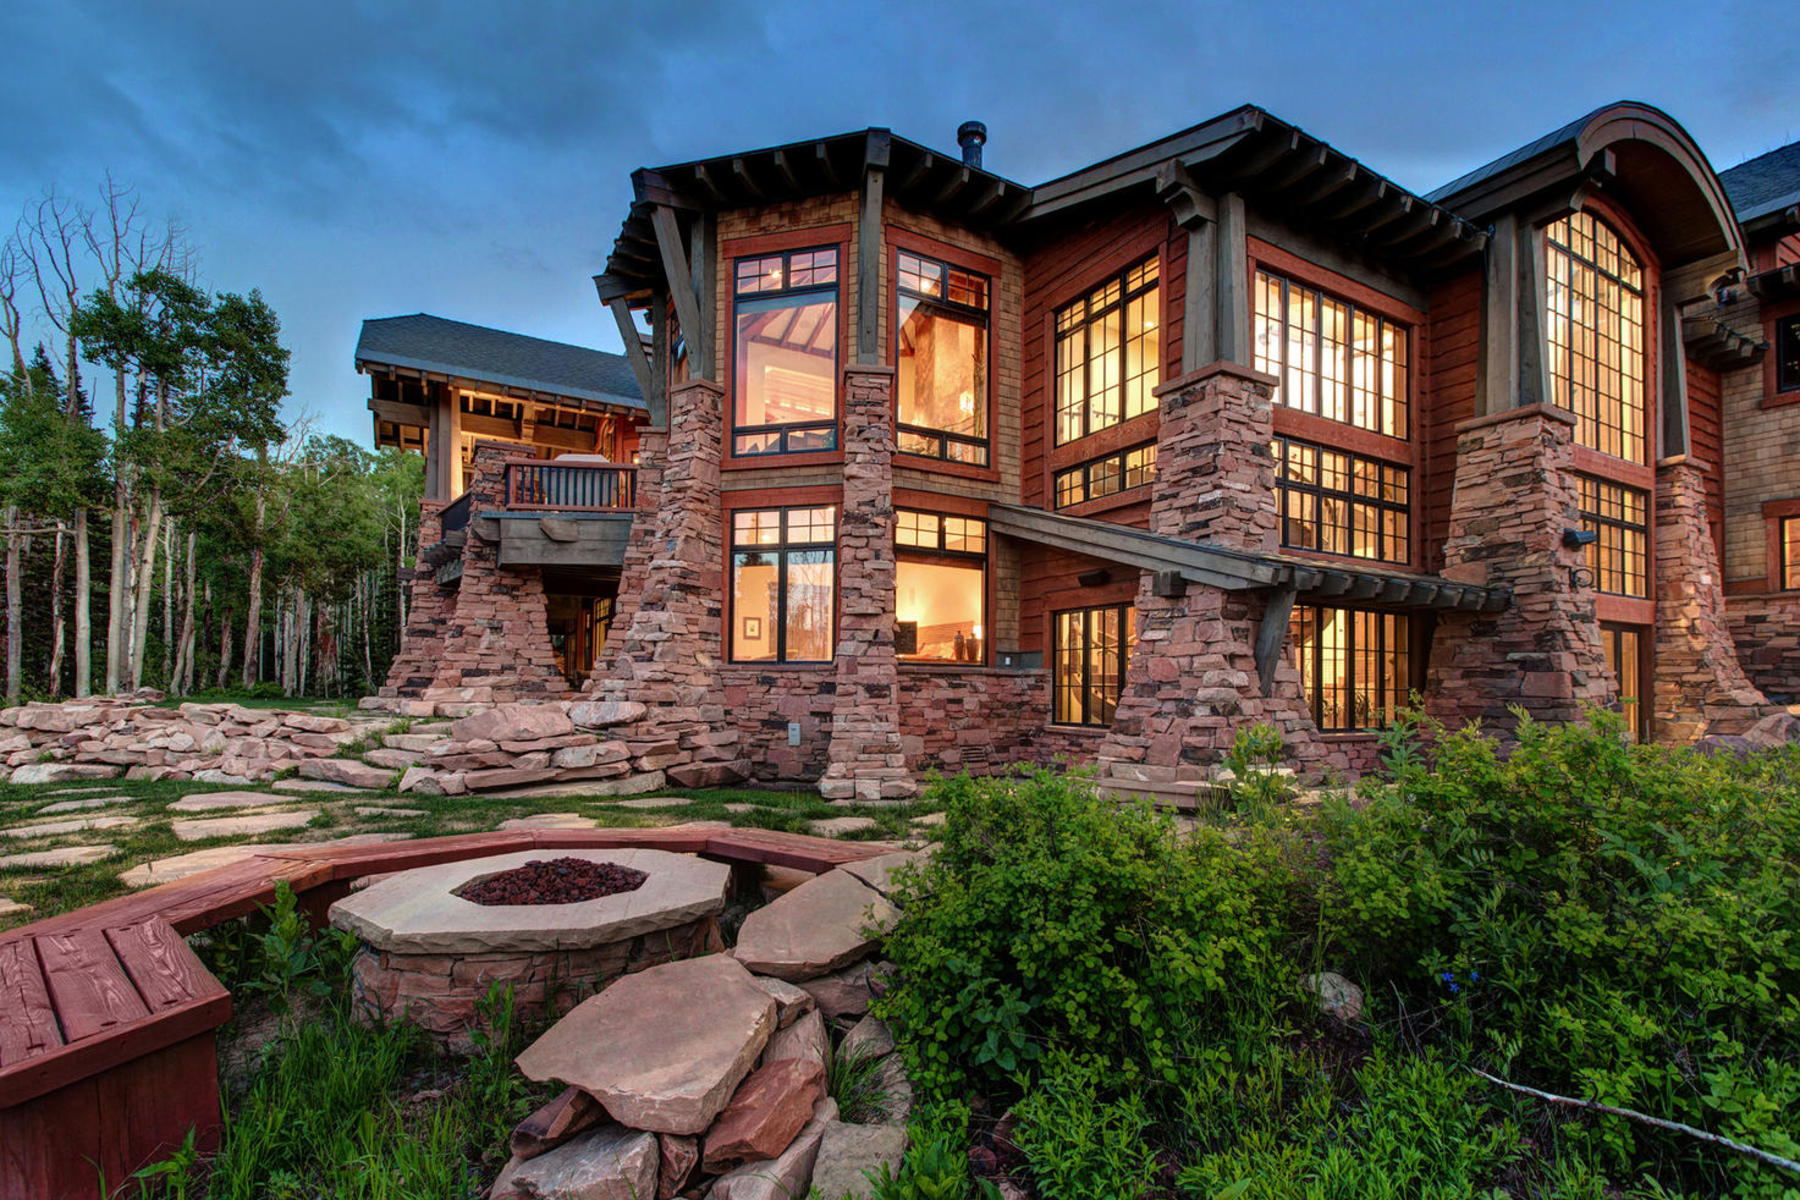 Casa Unifamiliar por un Venta en A View from the Top 141 White Pine Canyon Rd Park City, Utah 84098 Estados Unidos